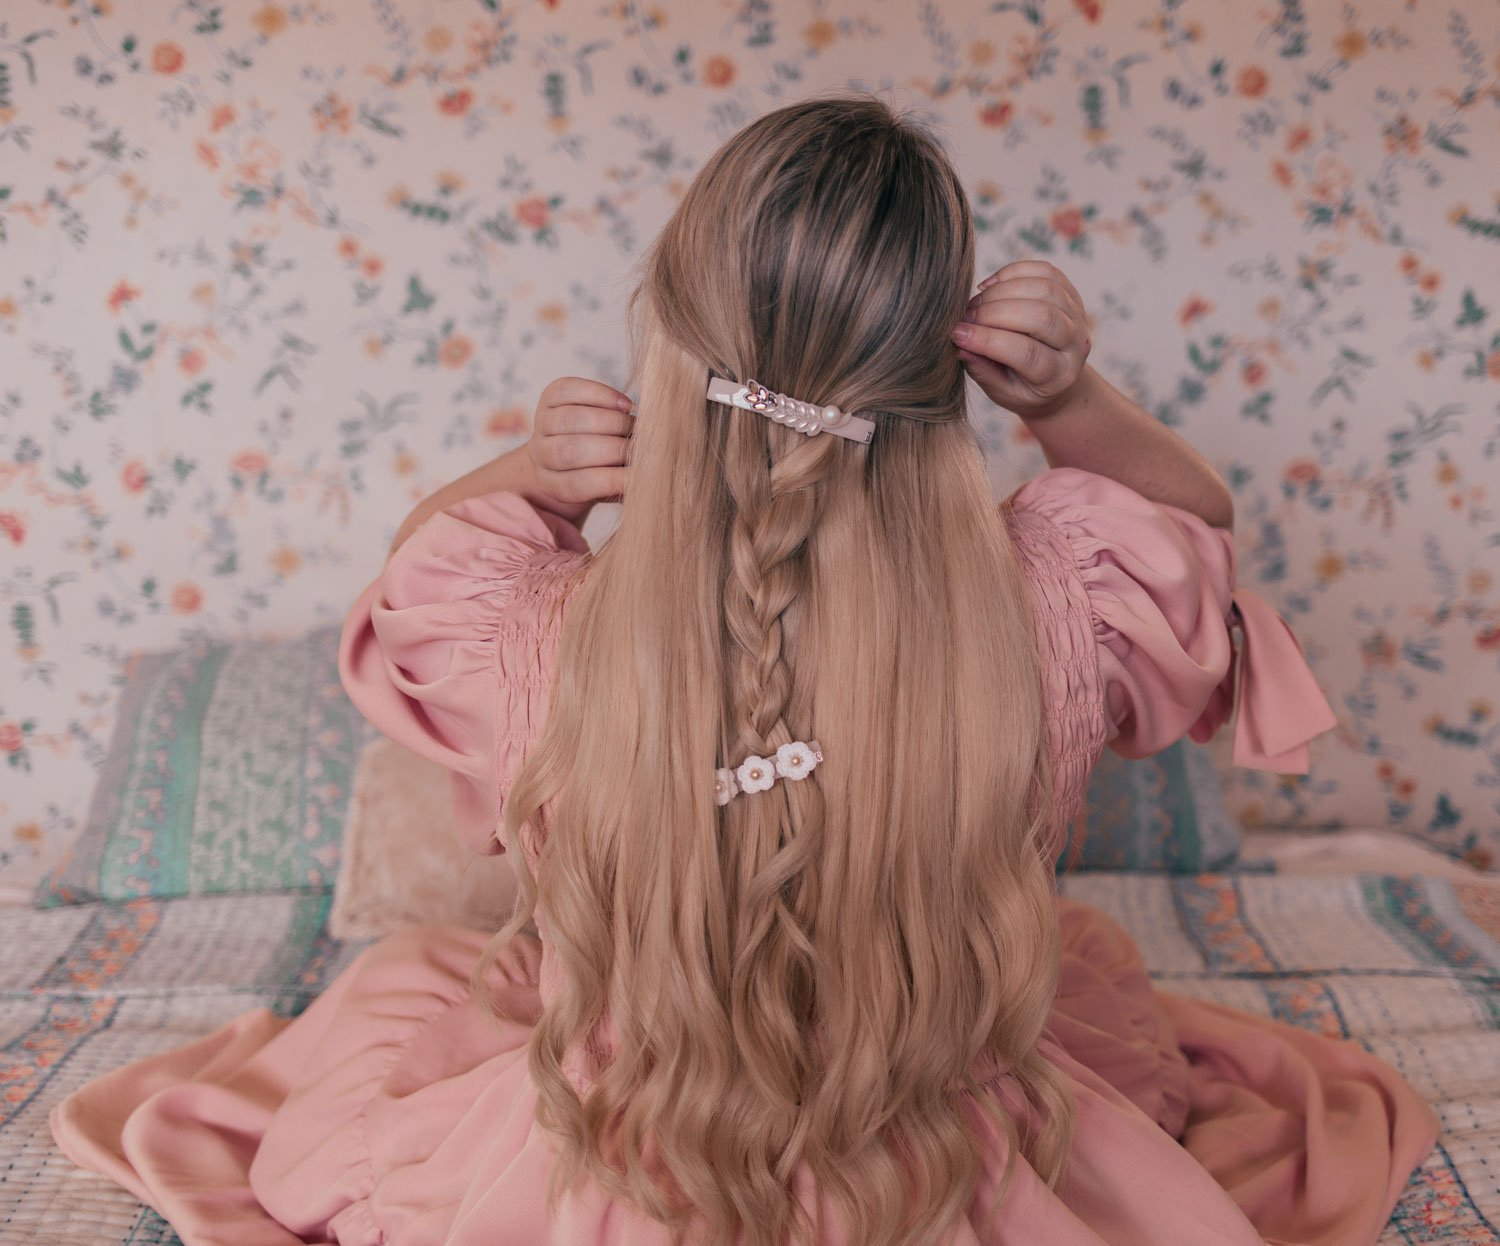 Feminine fashion blogger Elizabeth Hugen of Lizzie in Lace shares 3 Feminine Summer Hair Accessories to Wear Now including these gorgeous hair barrettes to accessorize a romantic braided hairstyle